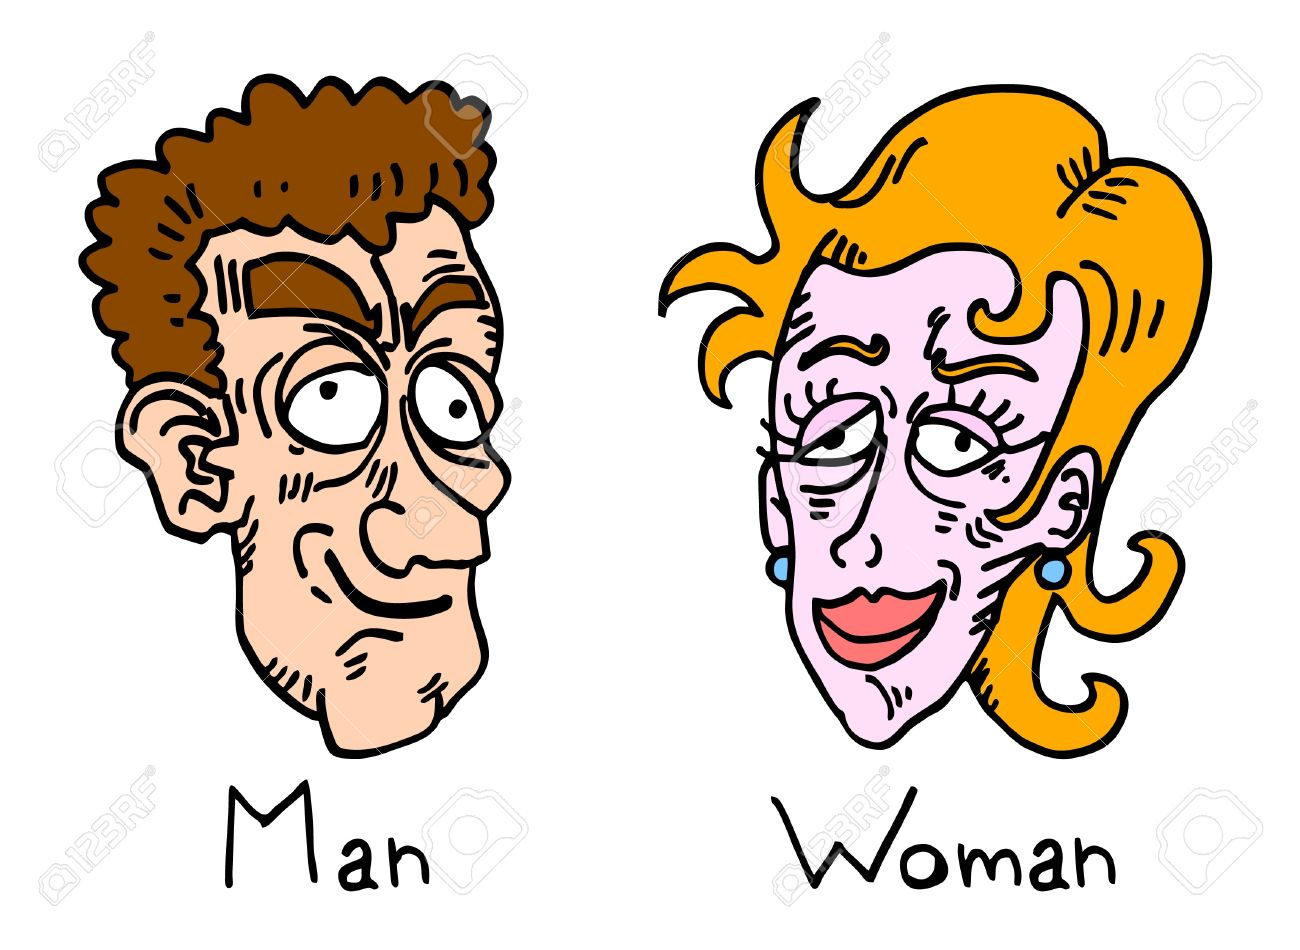 comic draw of ugly man and woman royalty free cliparts vectors and rh 123rf com Funny Ugly Faces Spongebob Ugly Face